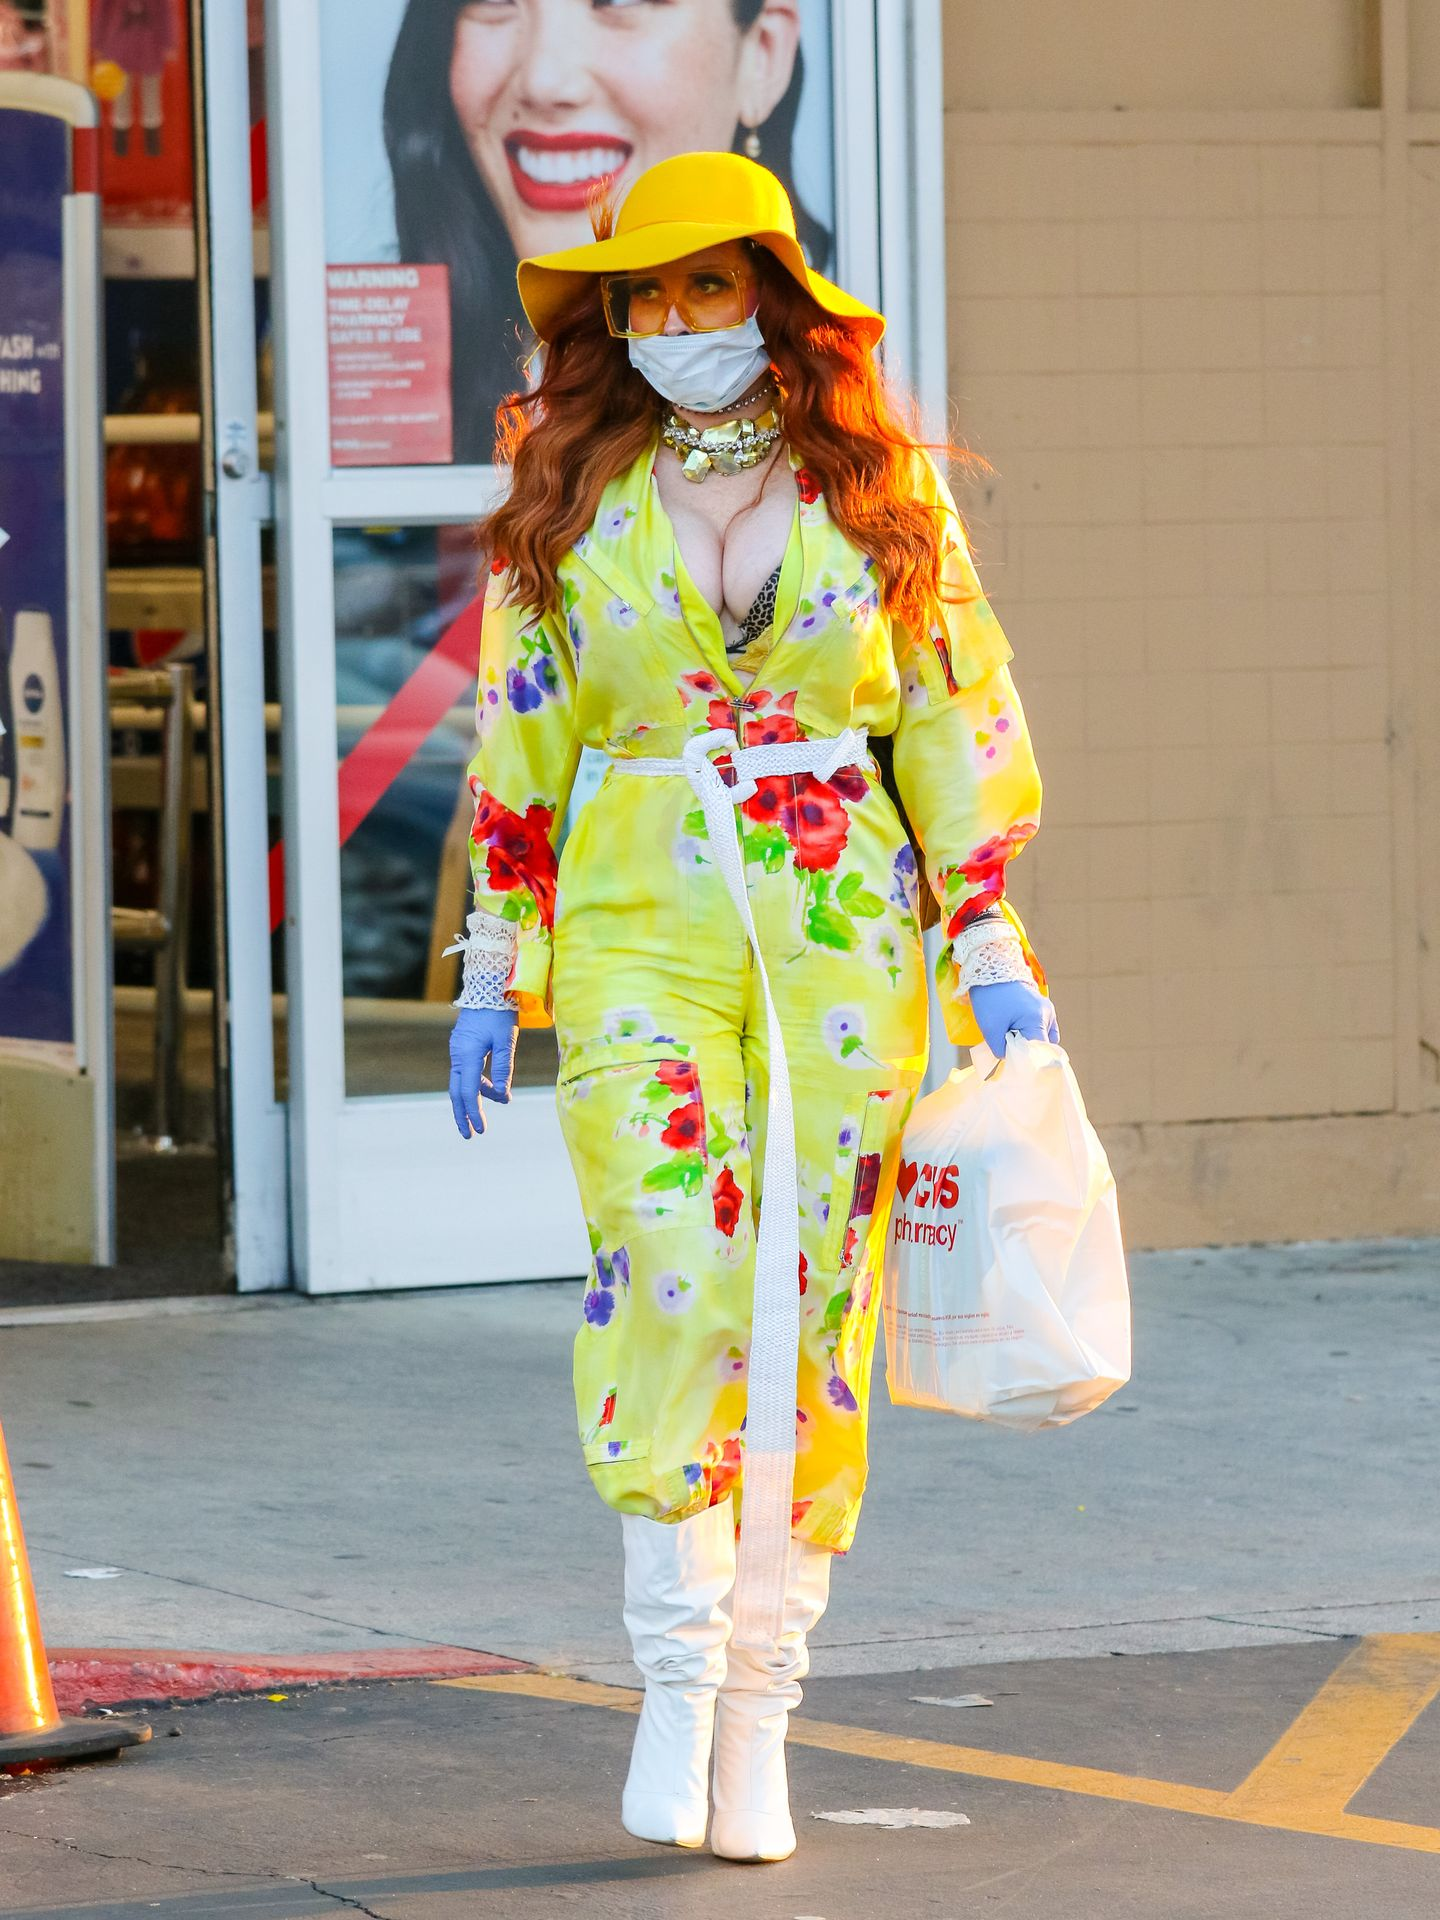 Phoebe Price Isn't Taking Any Chances When It Comes To The Coronavirus 0060